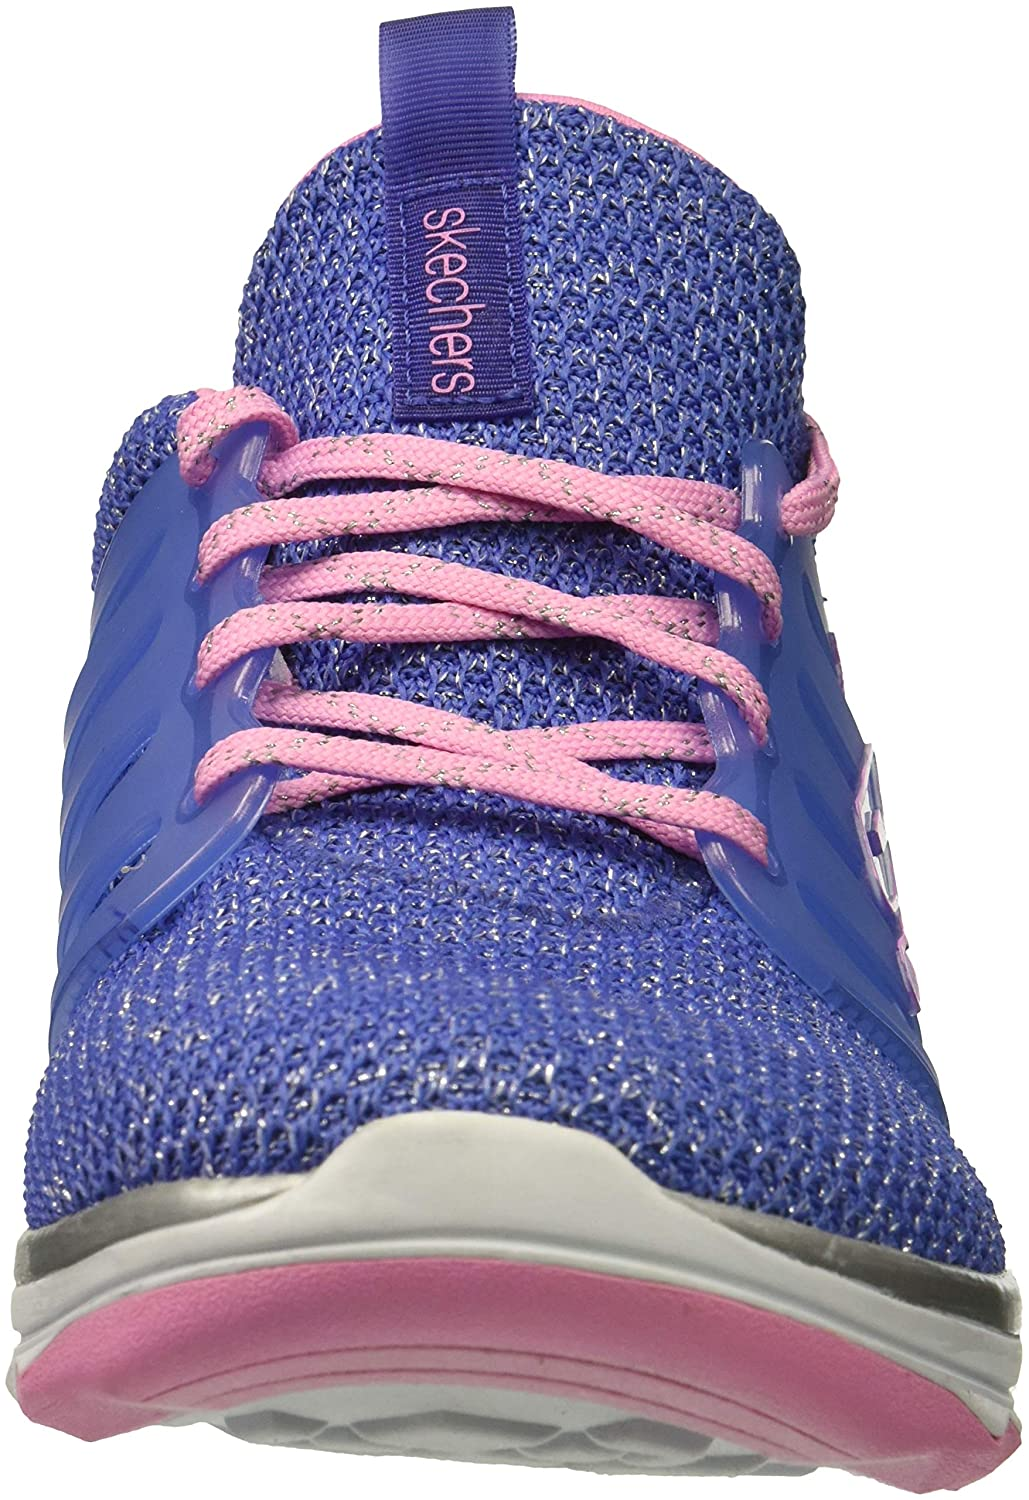 Skechers Kids Girl's Diamond Runner Sparkle Sprint Sneaker